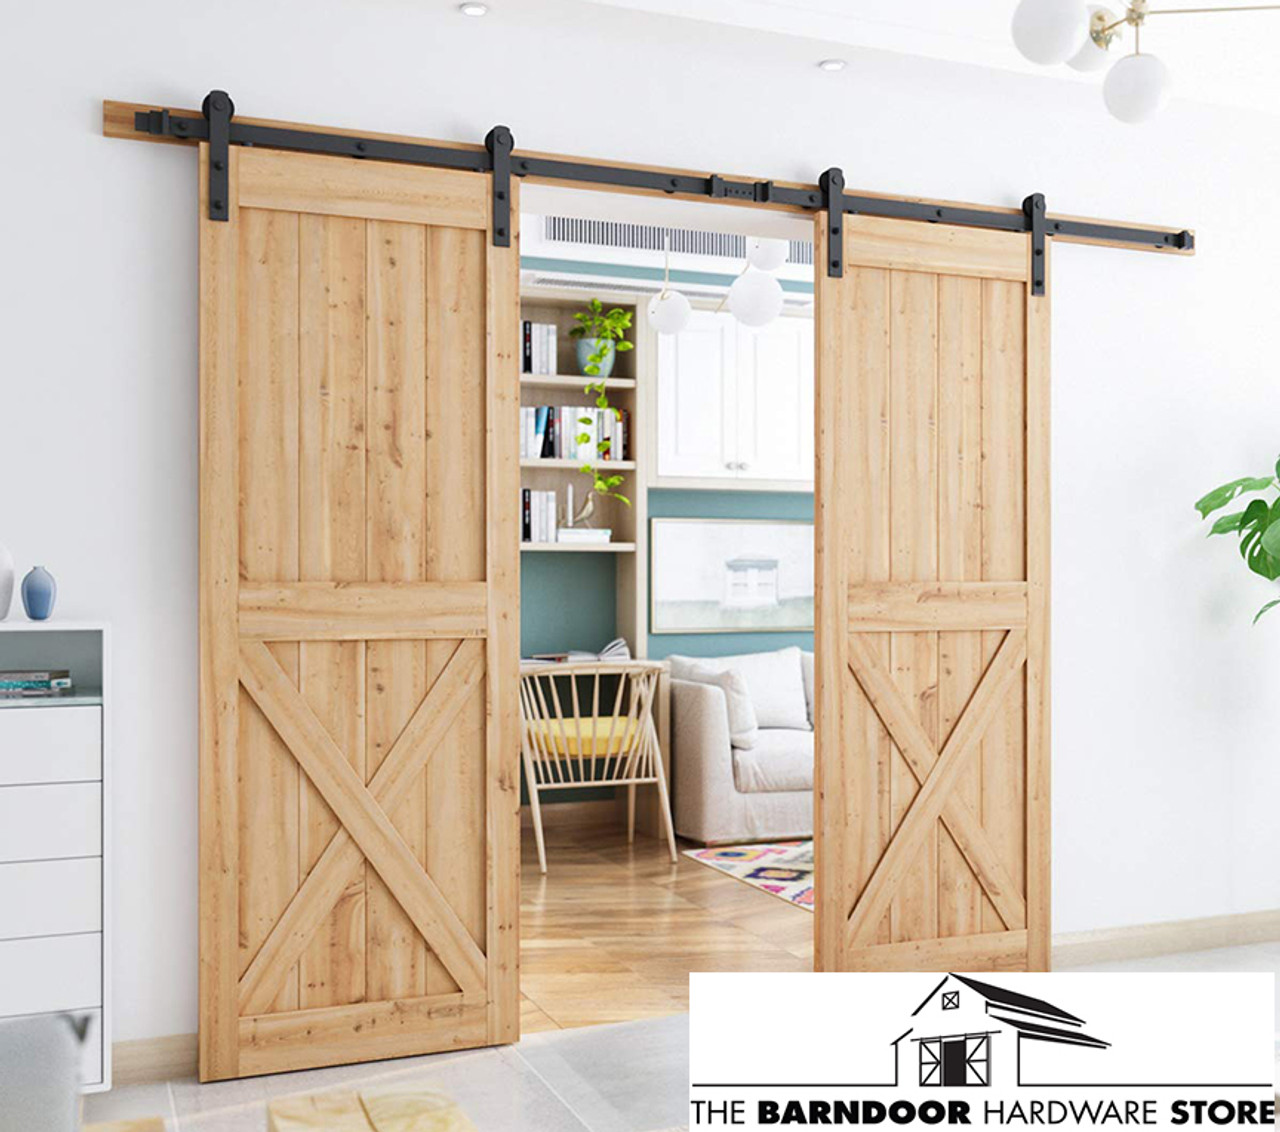 Double Sliding Barn Door Hardware Kit The Barn Door Hardware Store